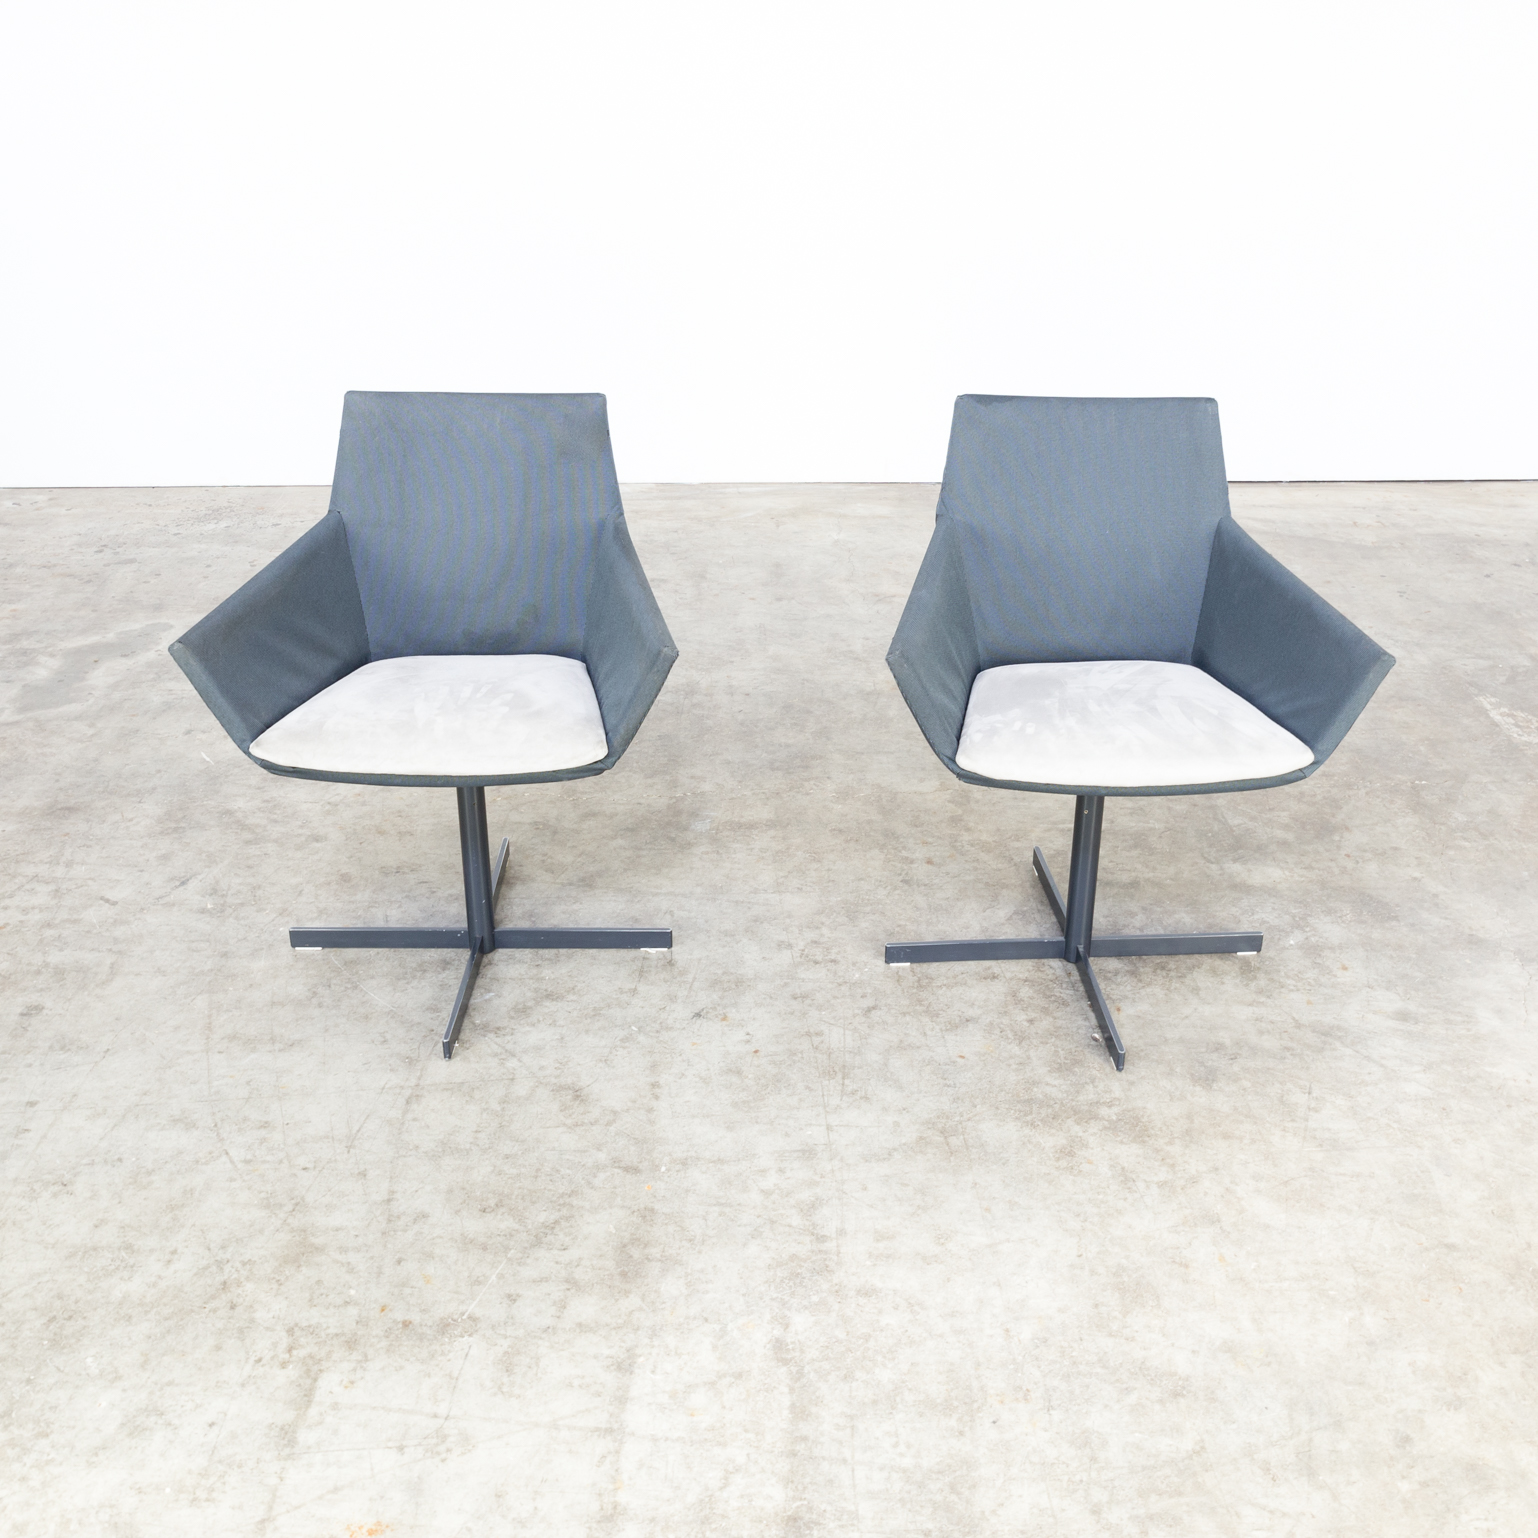 Prime Fabric And Metal Dining Chairs Short Links Chair Design For Home Short Linksinfo